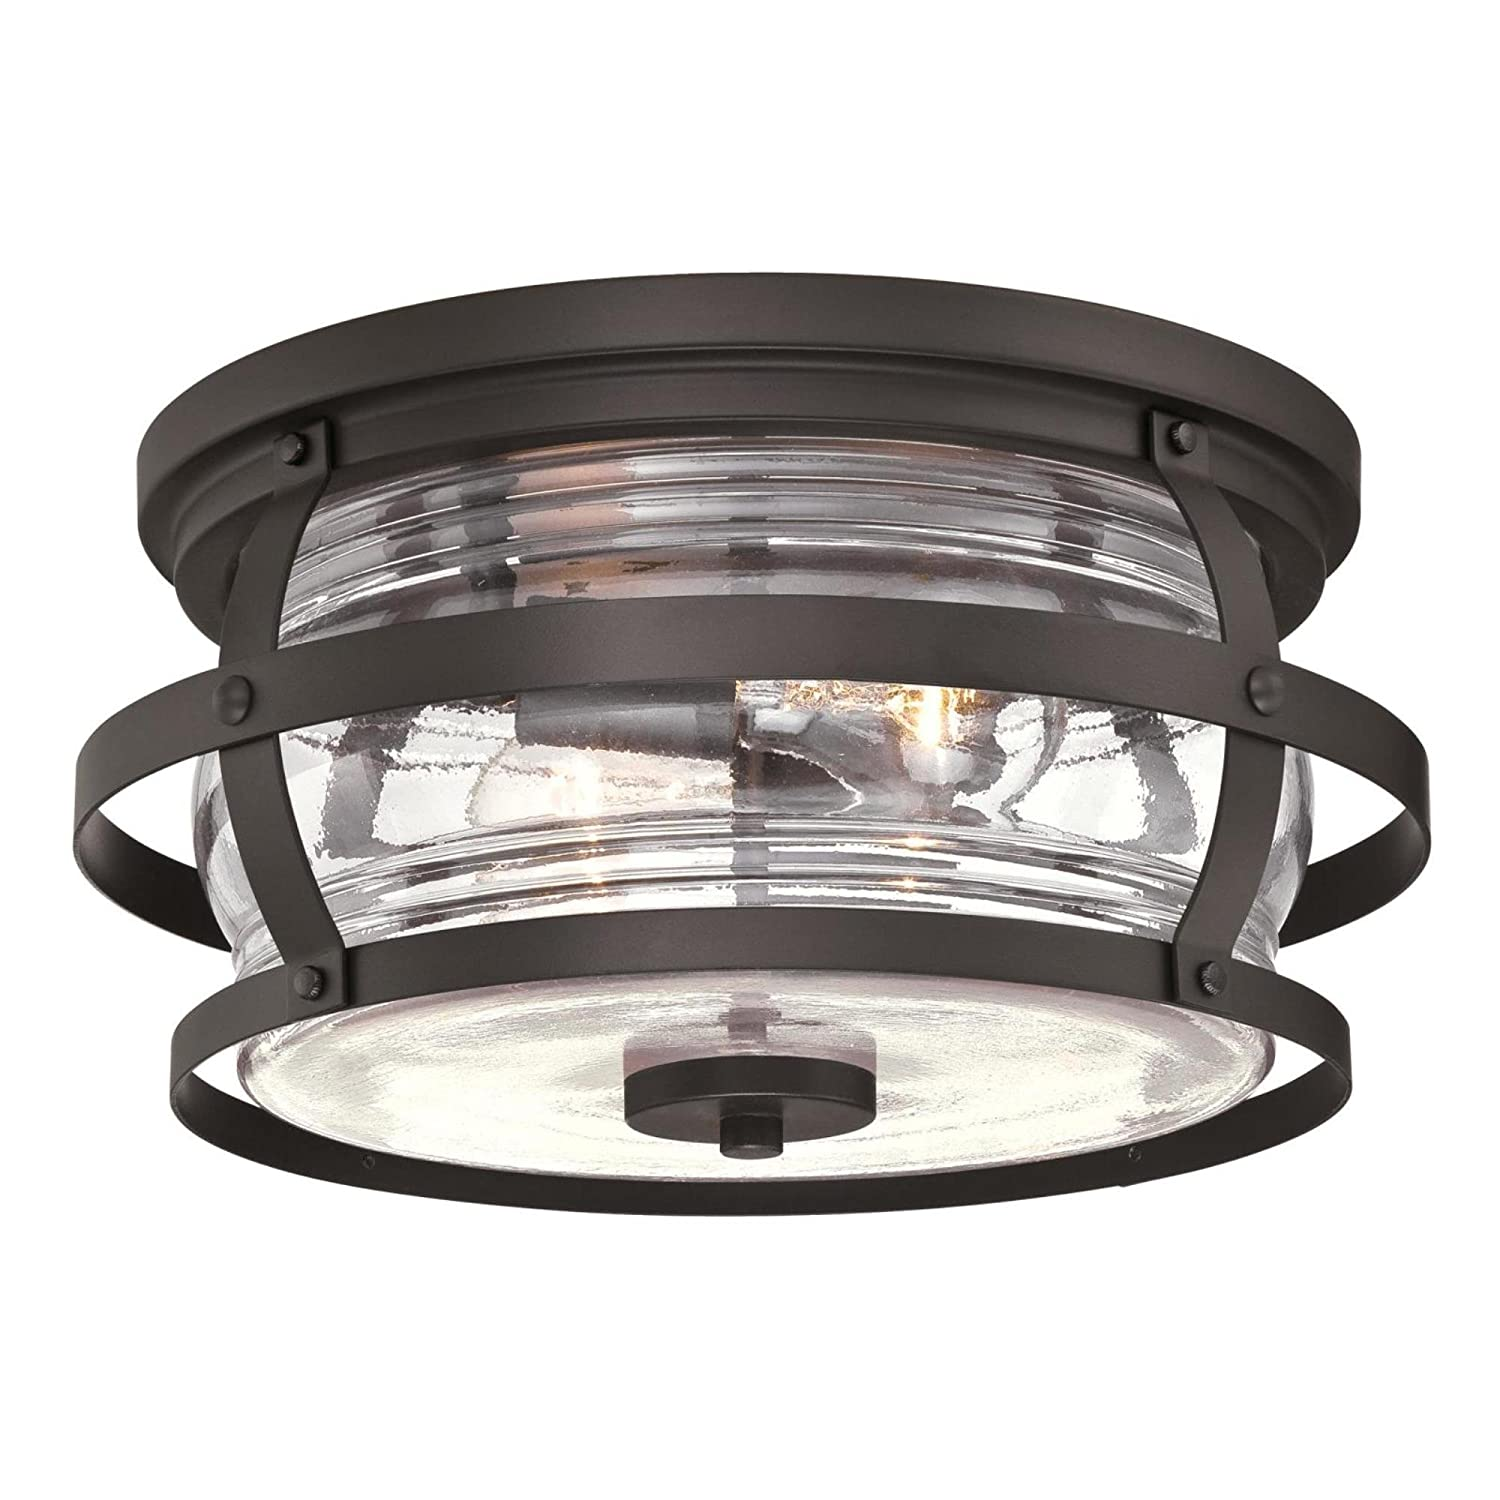 Westinghouse Lighting 6359500 Weatherby Two-Light Flush-Mount, Weathered Bronze Finish with Clear Glass Outdoor Ceiling Fixture